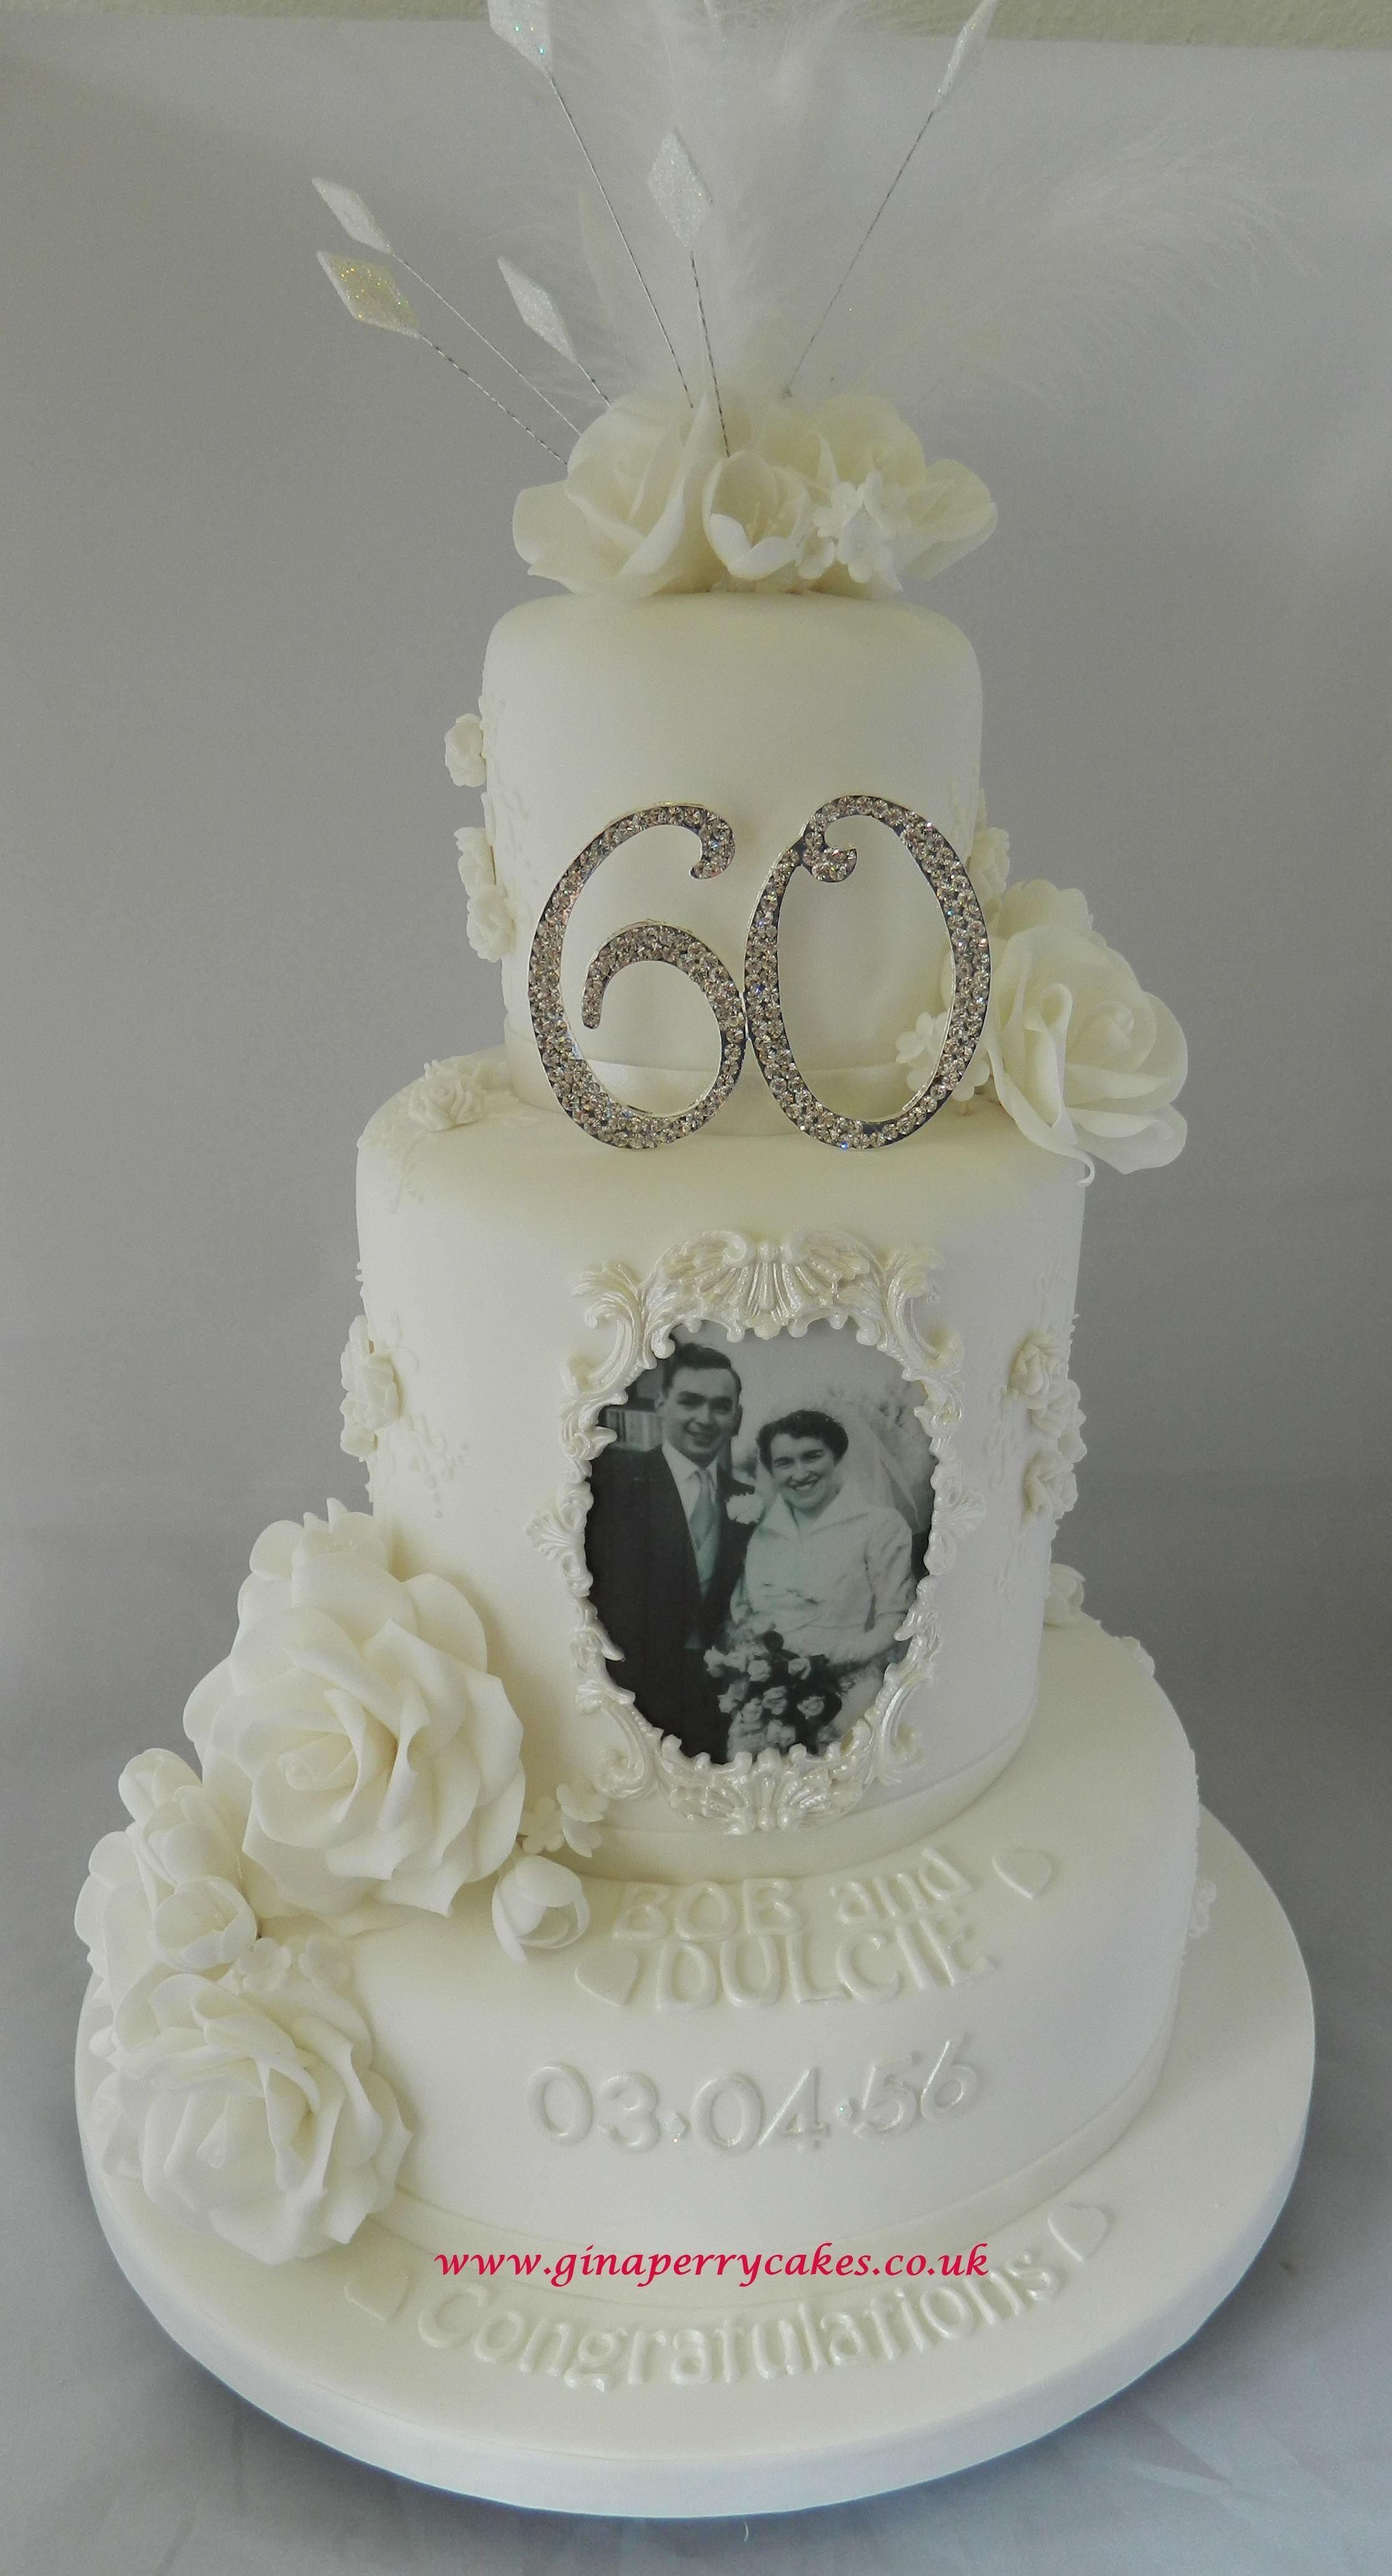 10 Fantastic Ideas For 60Th Wedding Anniversary ideas literarywondrous0th wedding anniversary cakes cake images 2020